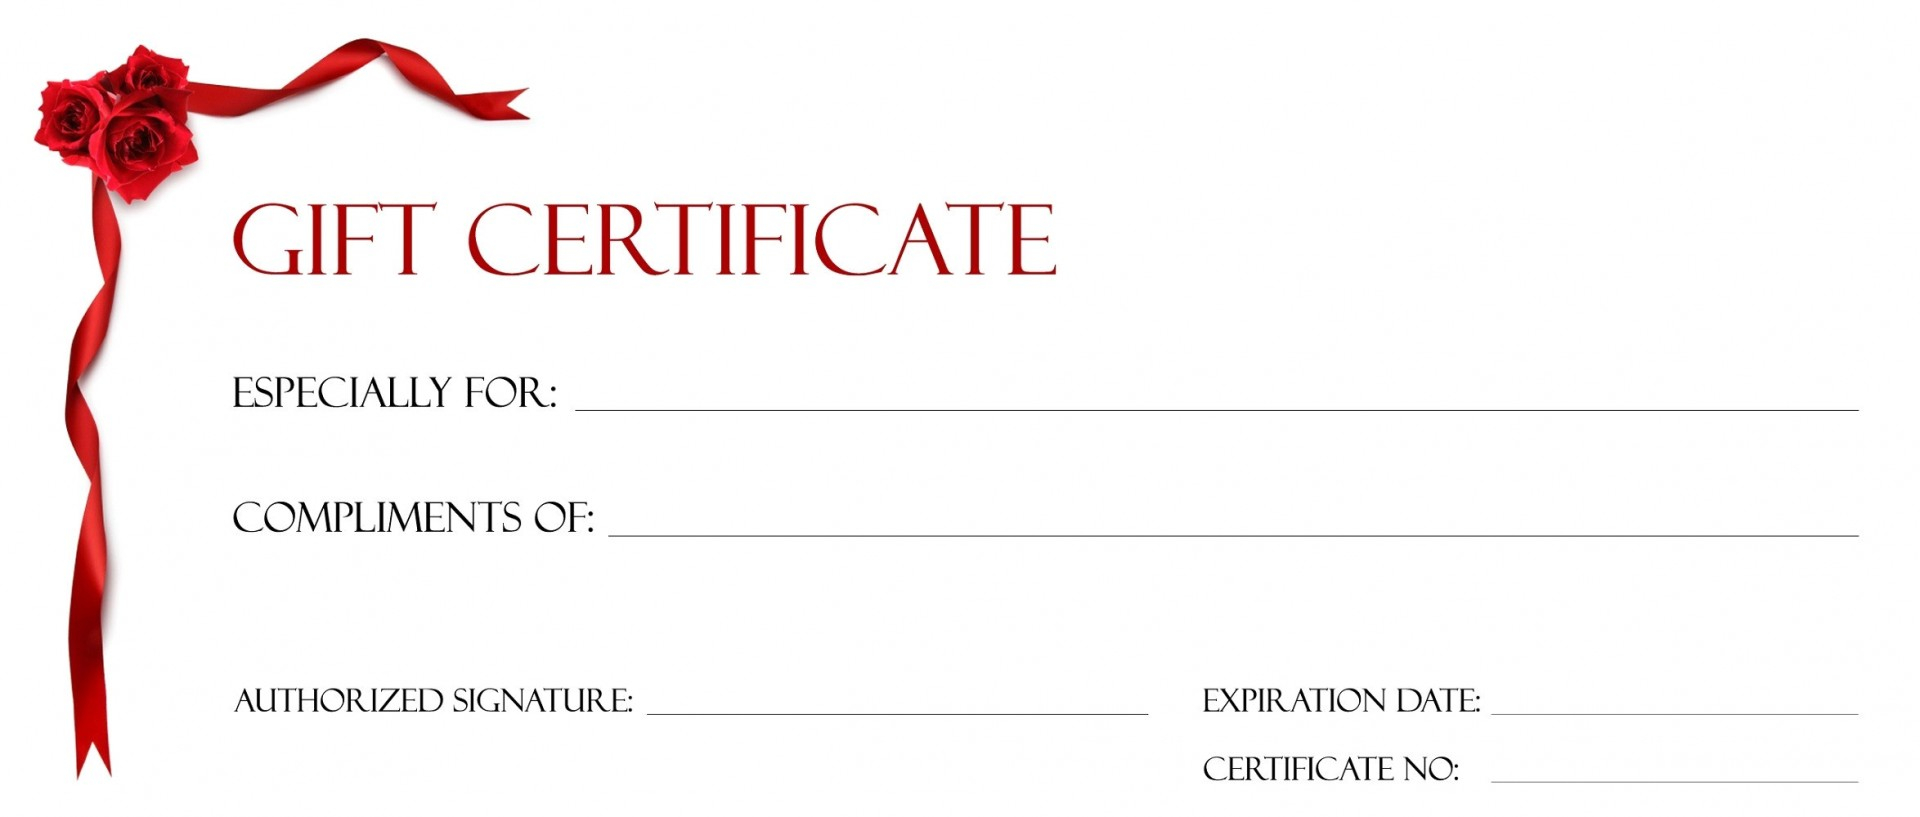 Free Birthday Gift Certificate Template Ideas Microsoft Inside Inside Microsoft Gift Certificate Template Free Word